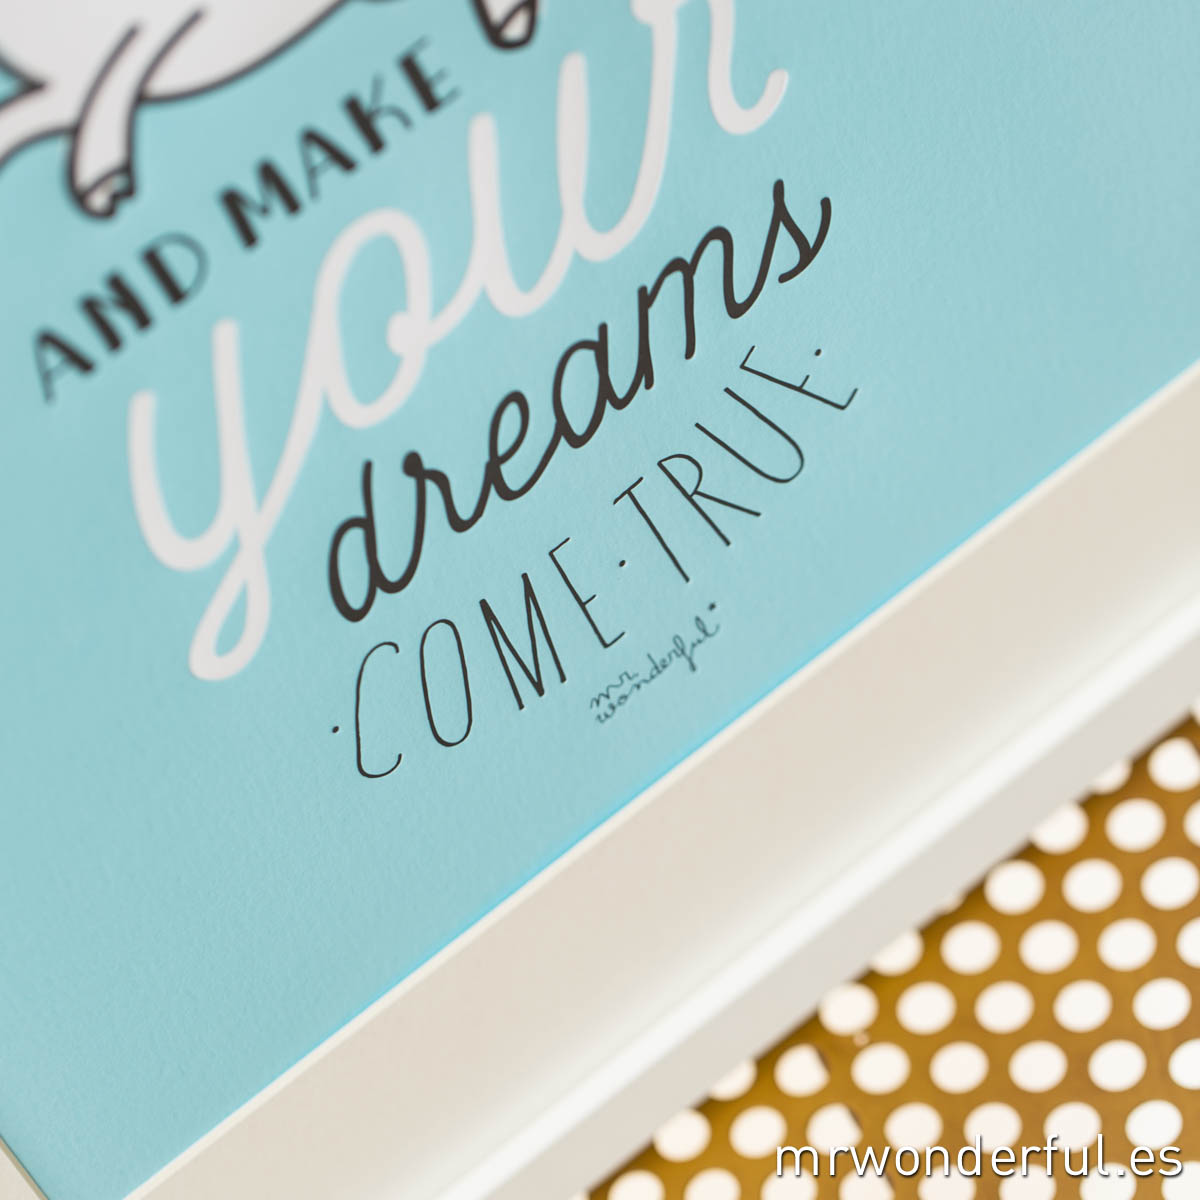 mrwonderful_lamina_wakeup−make−dreams-12